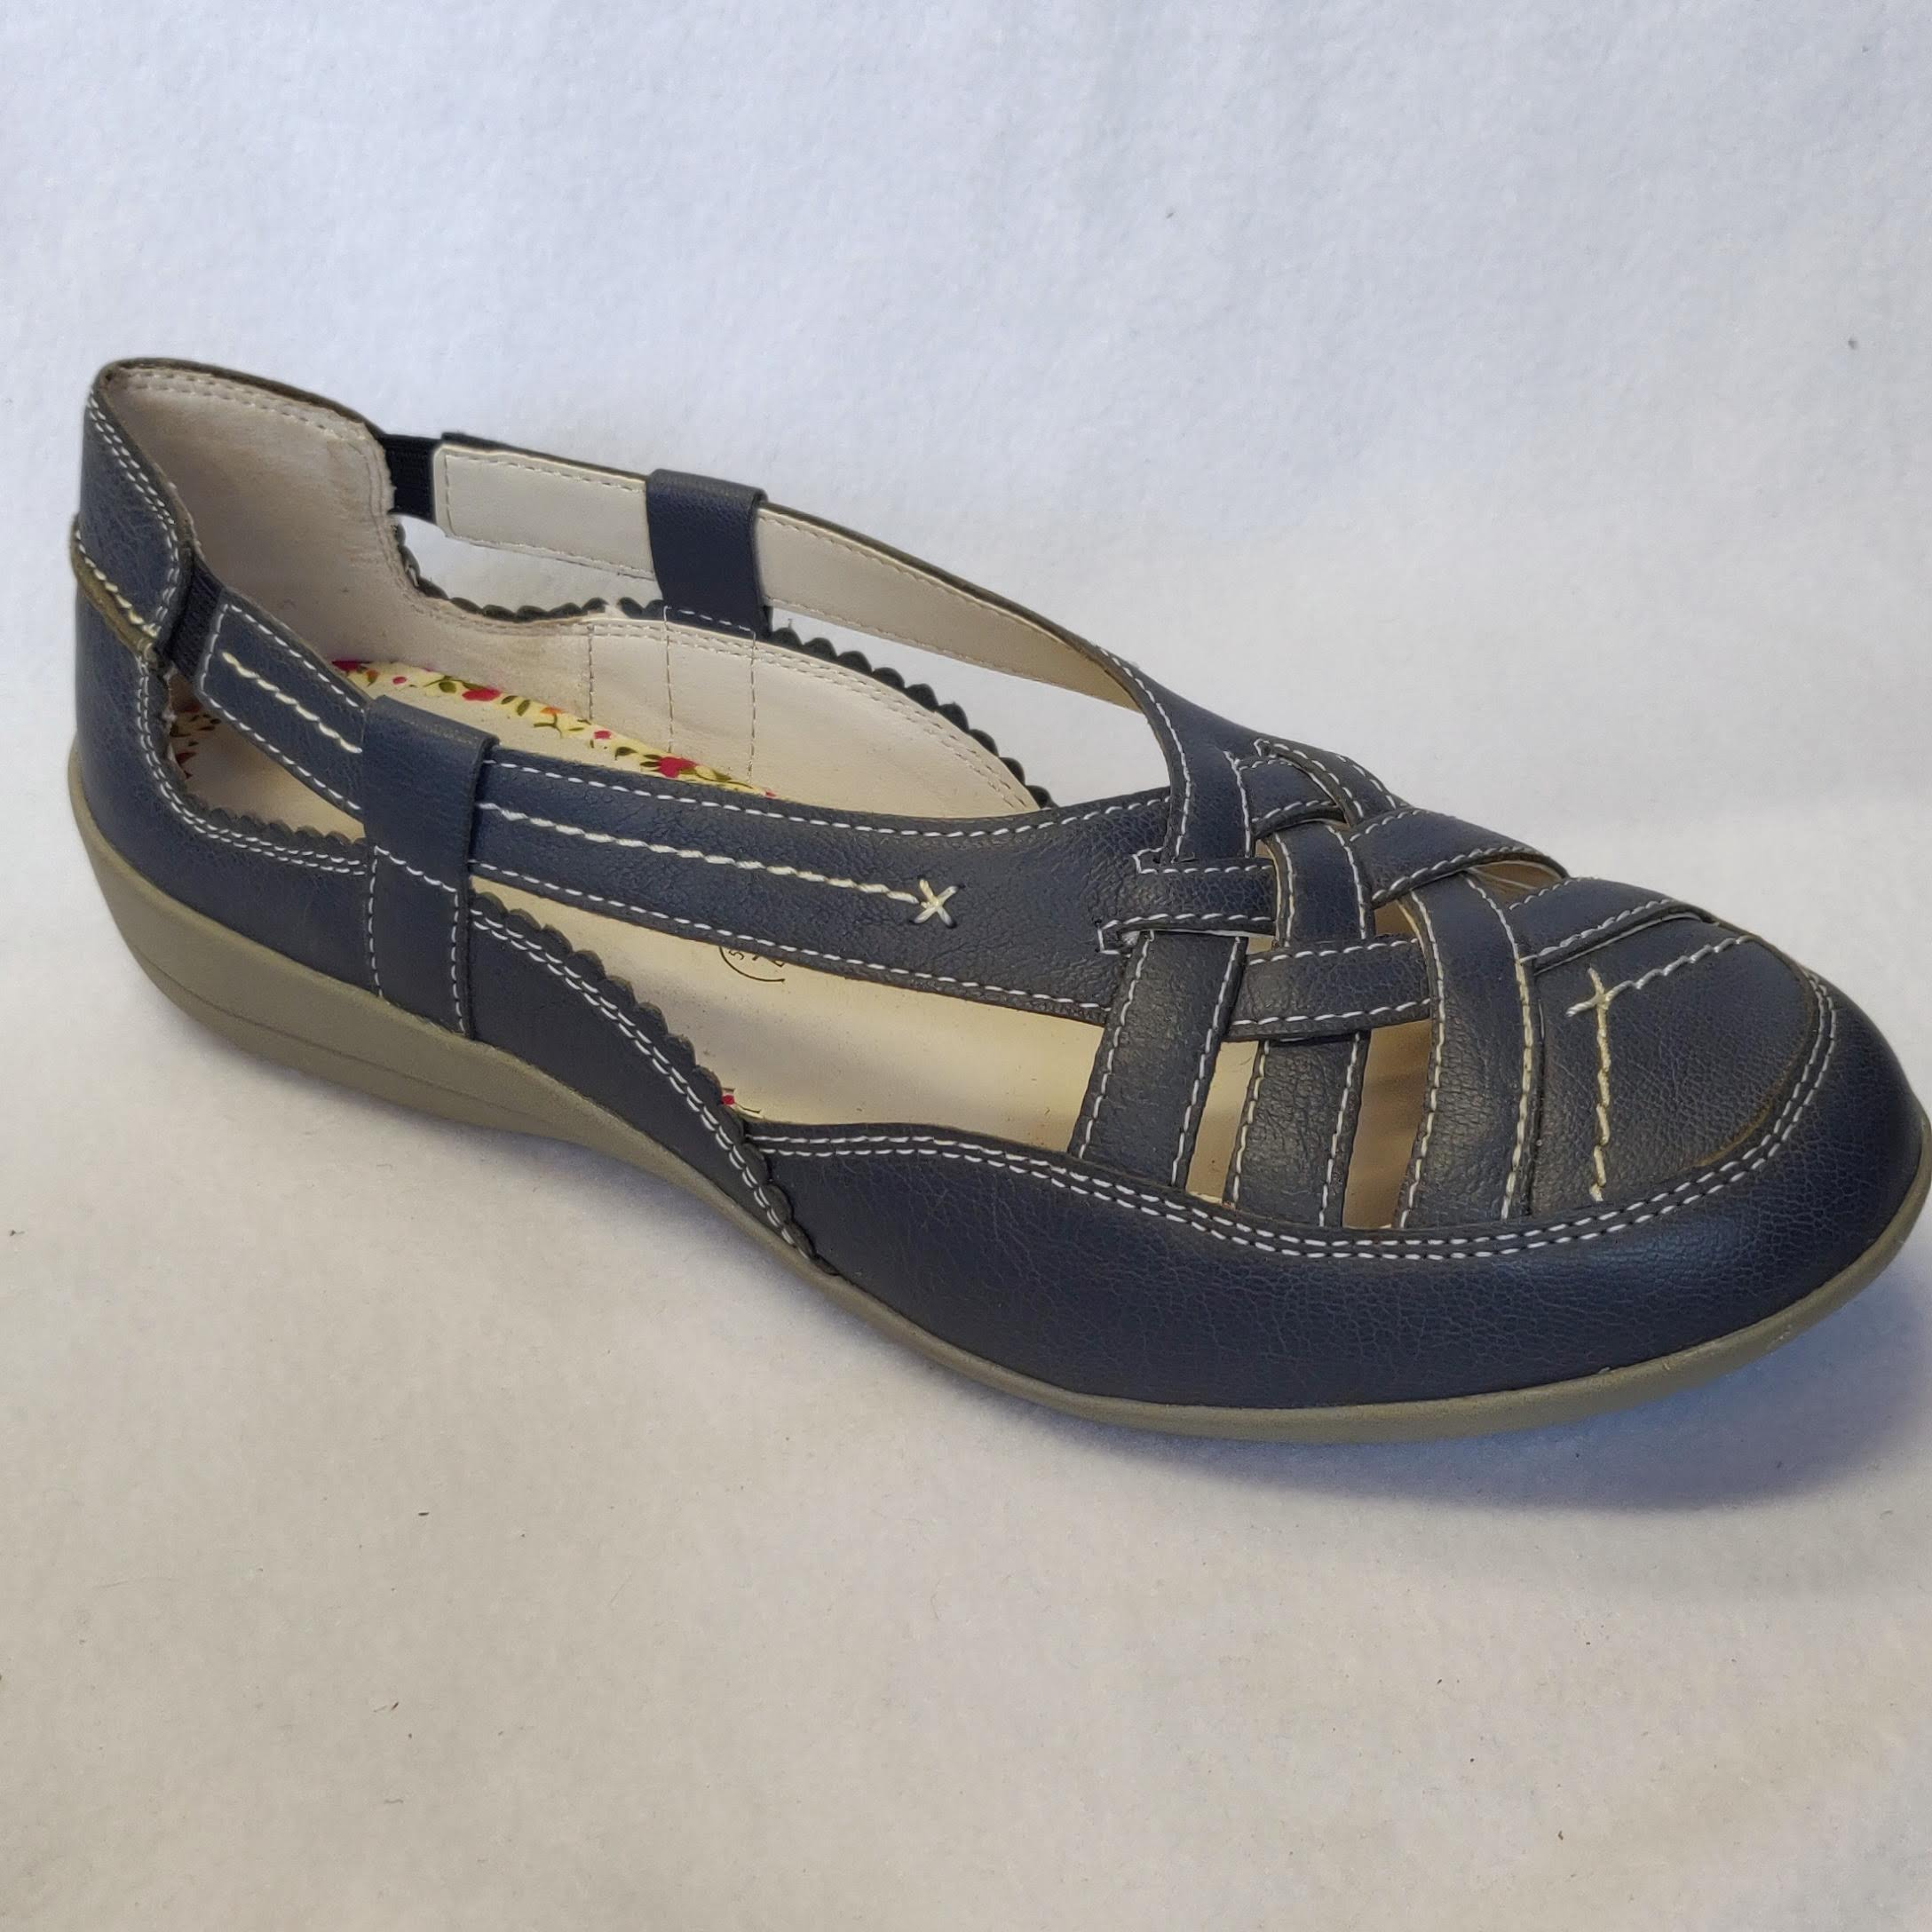 Ladies Padders Delta Blue Sandals Size 5.5/6.5